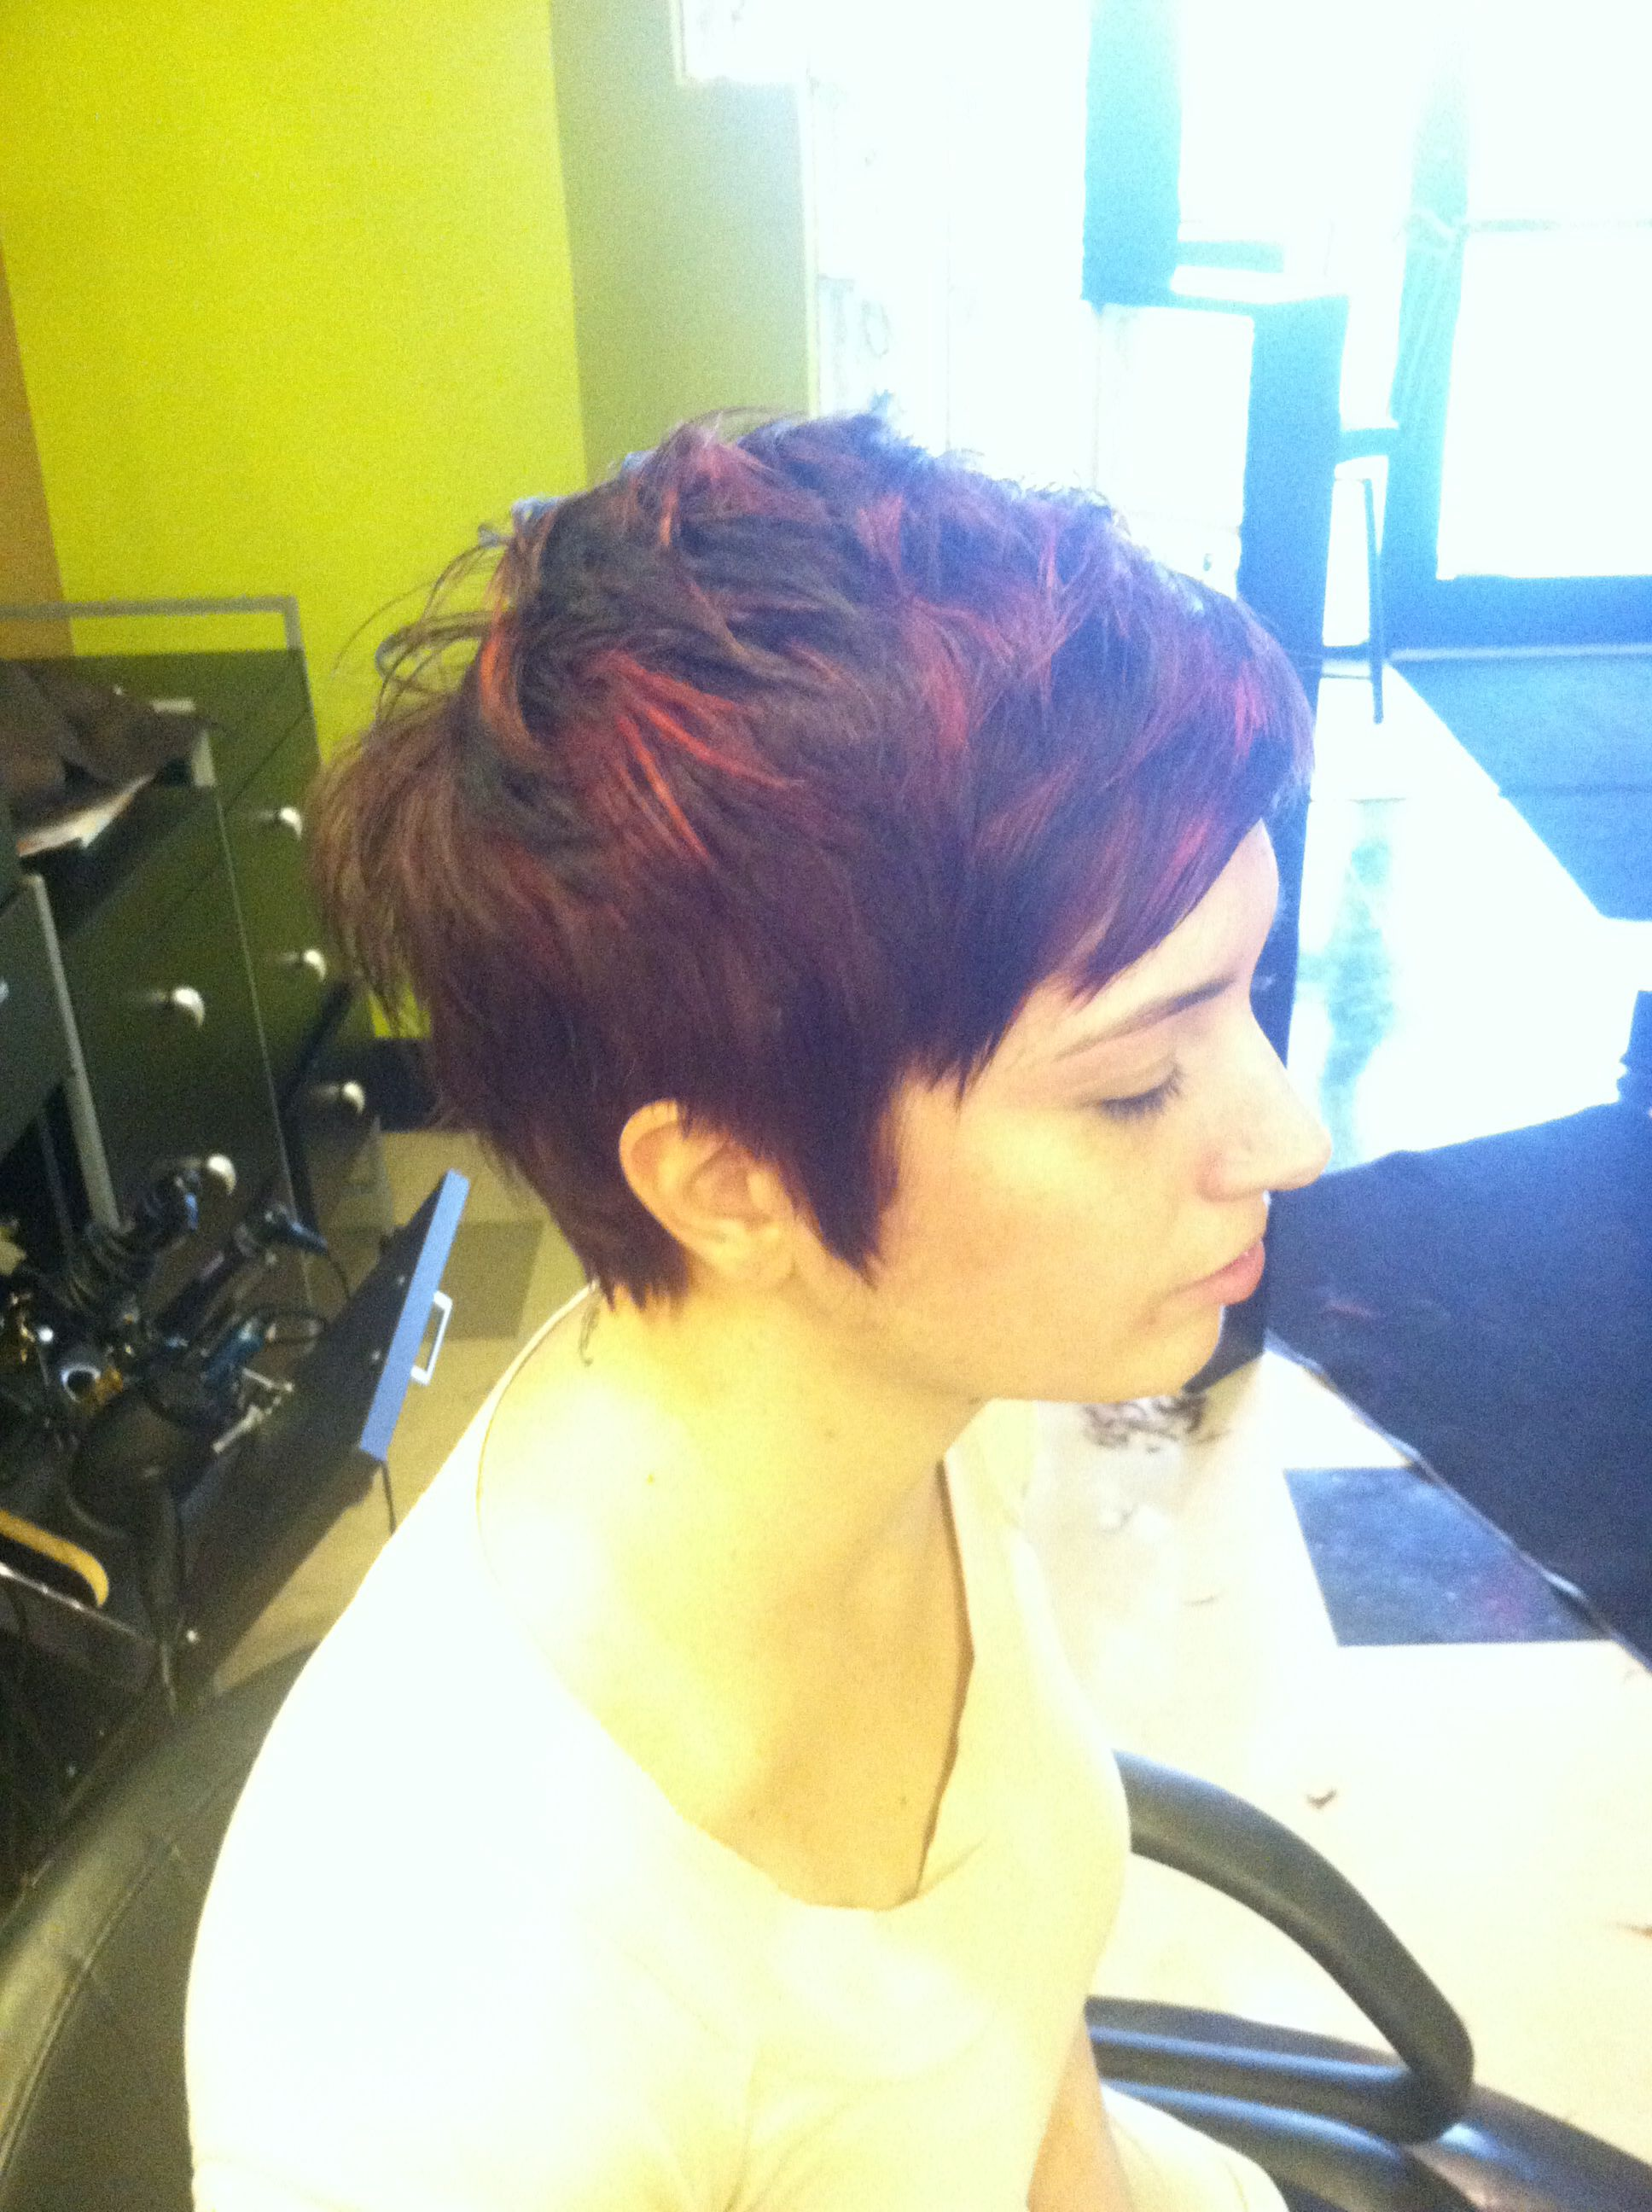 Red Hair Pixie Cut Pravana By Caitlin Kelly At Avantgarde Salon And